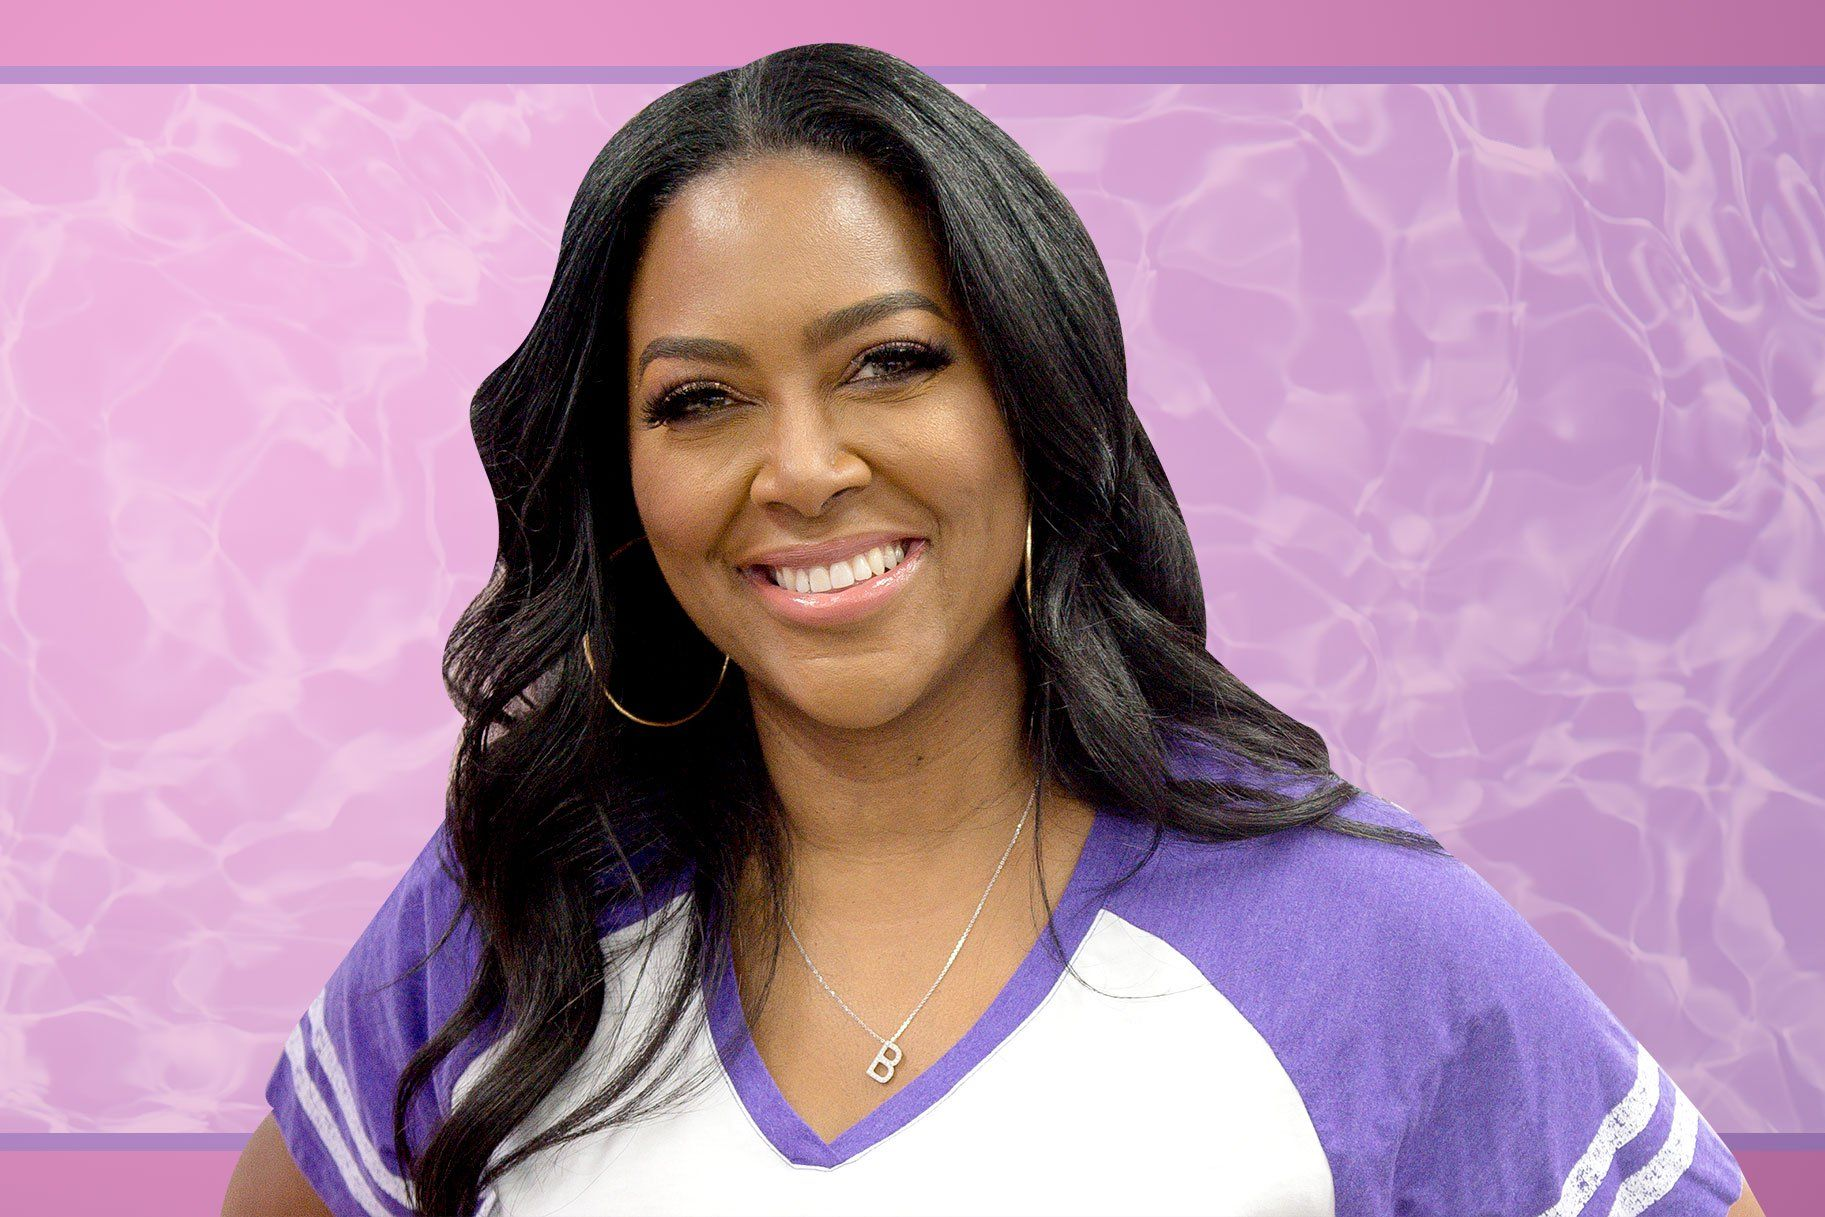 Kenya Moore Is Announcing Her Partnership With Sally